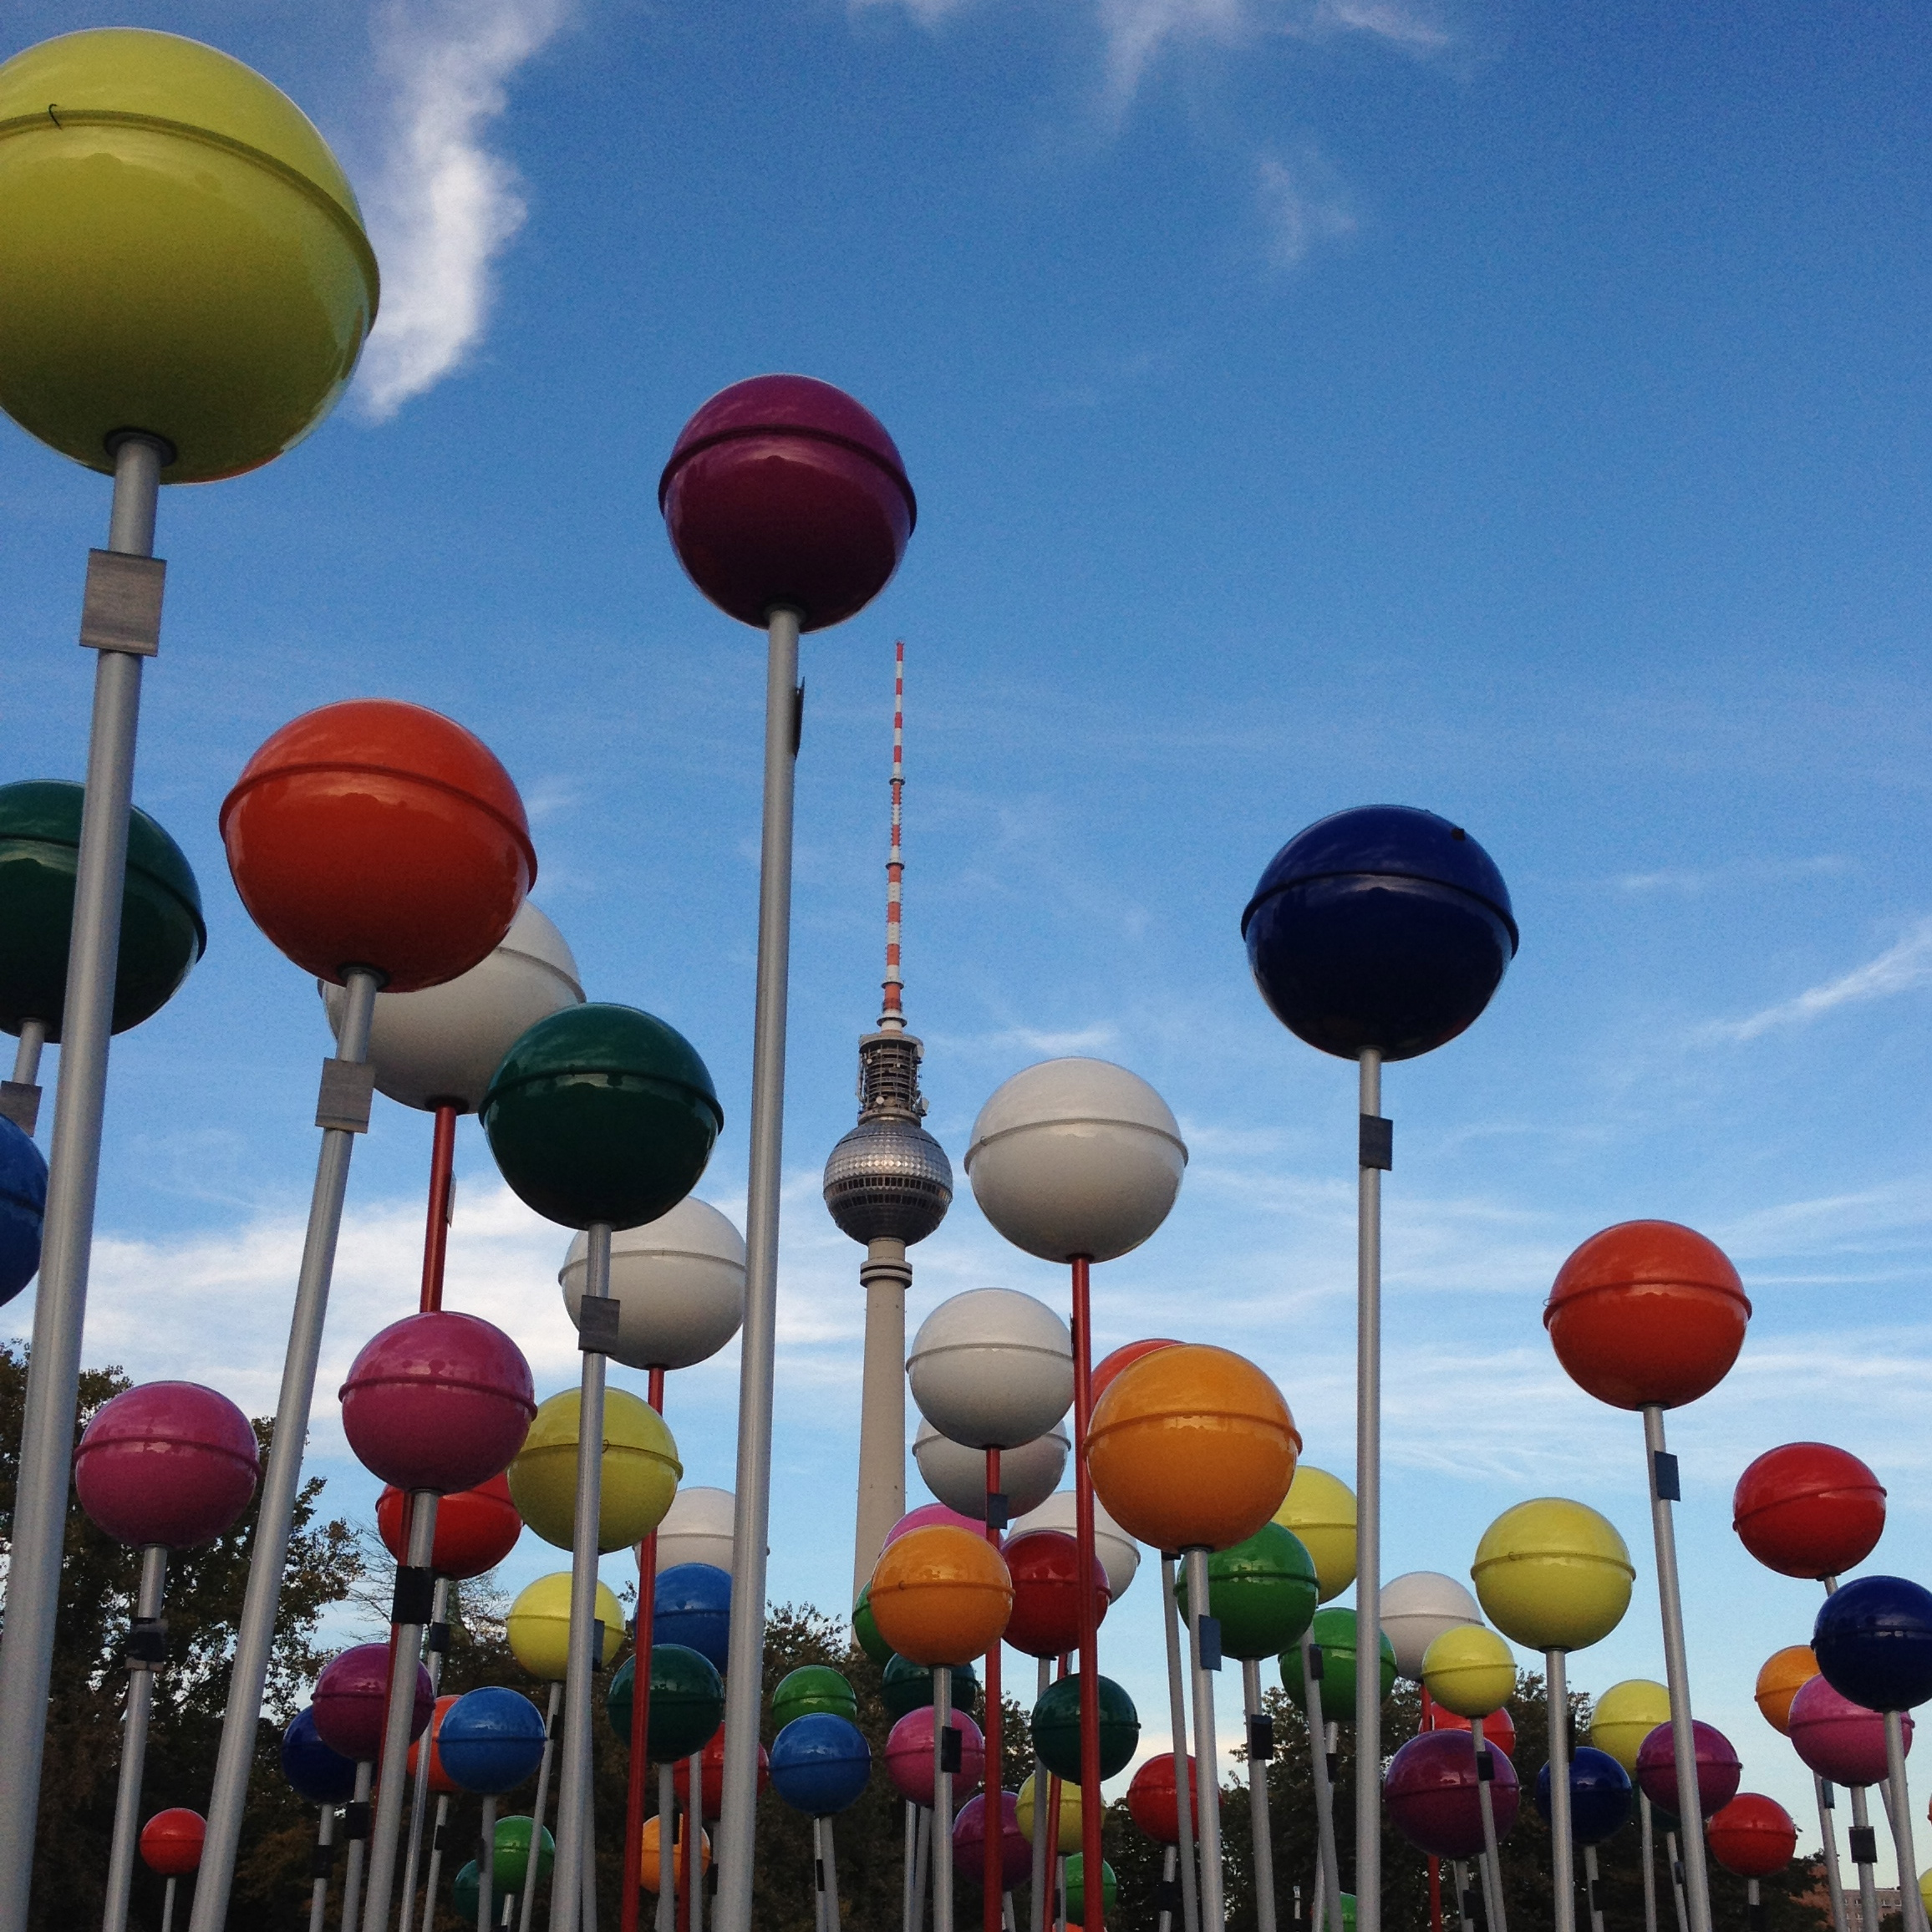 Hidden between the other colorful balls.